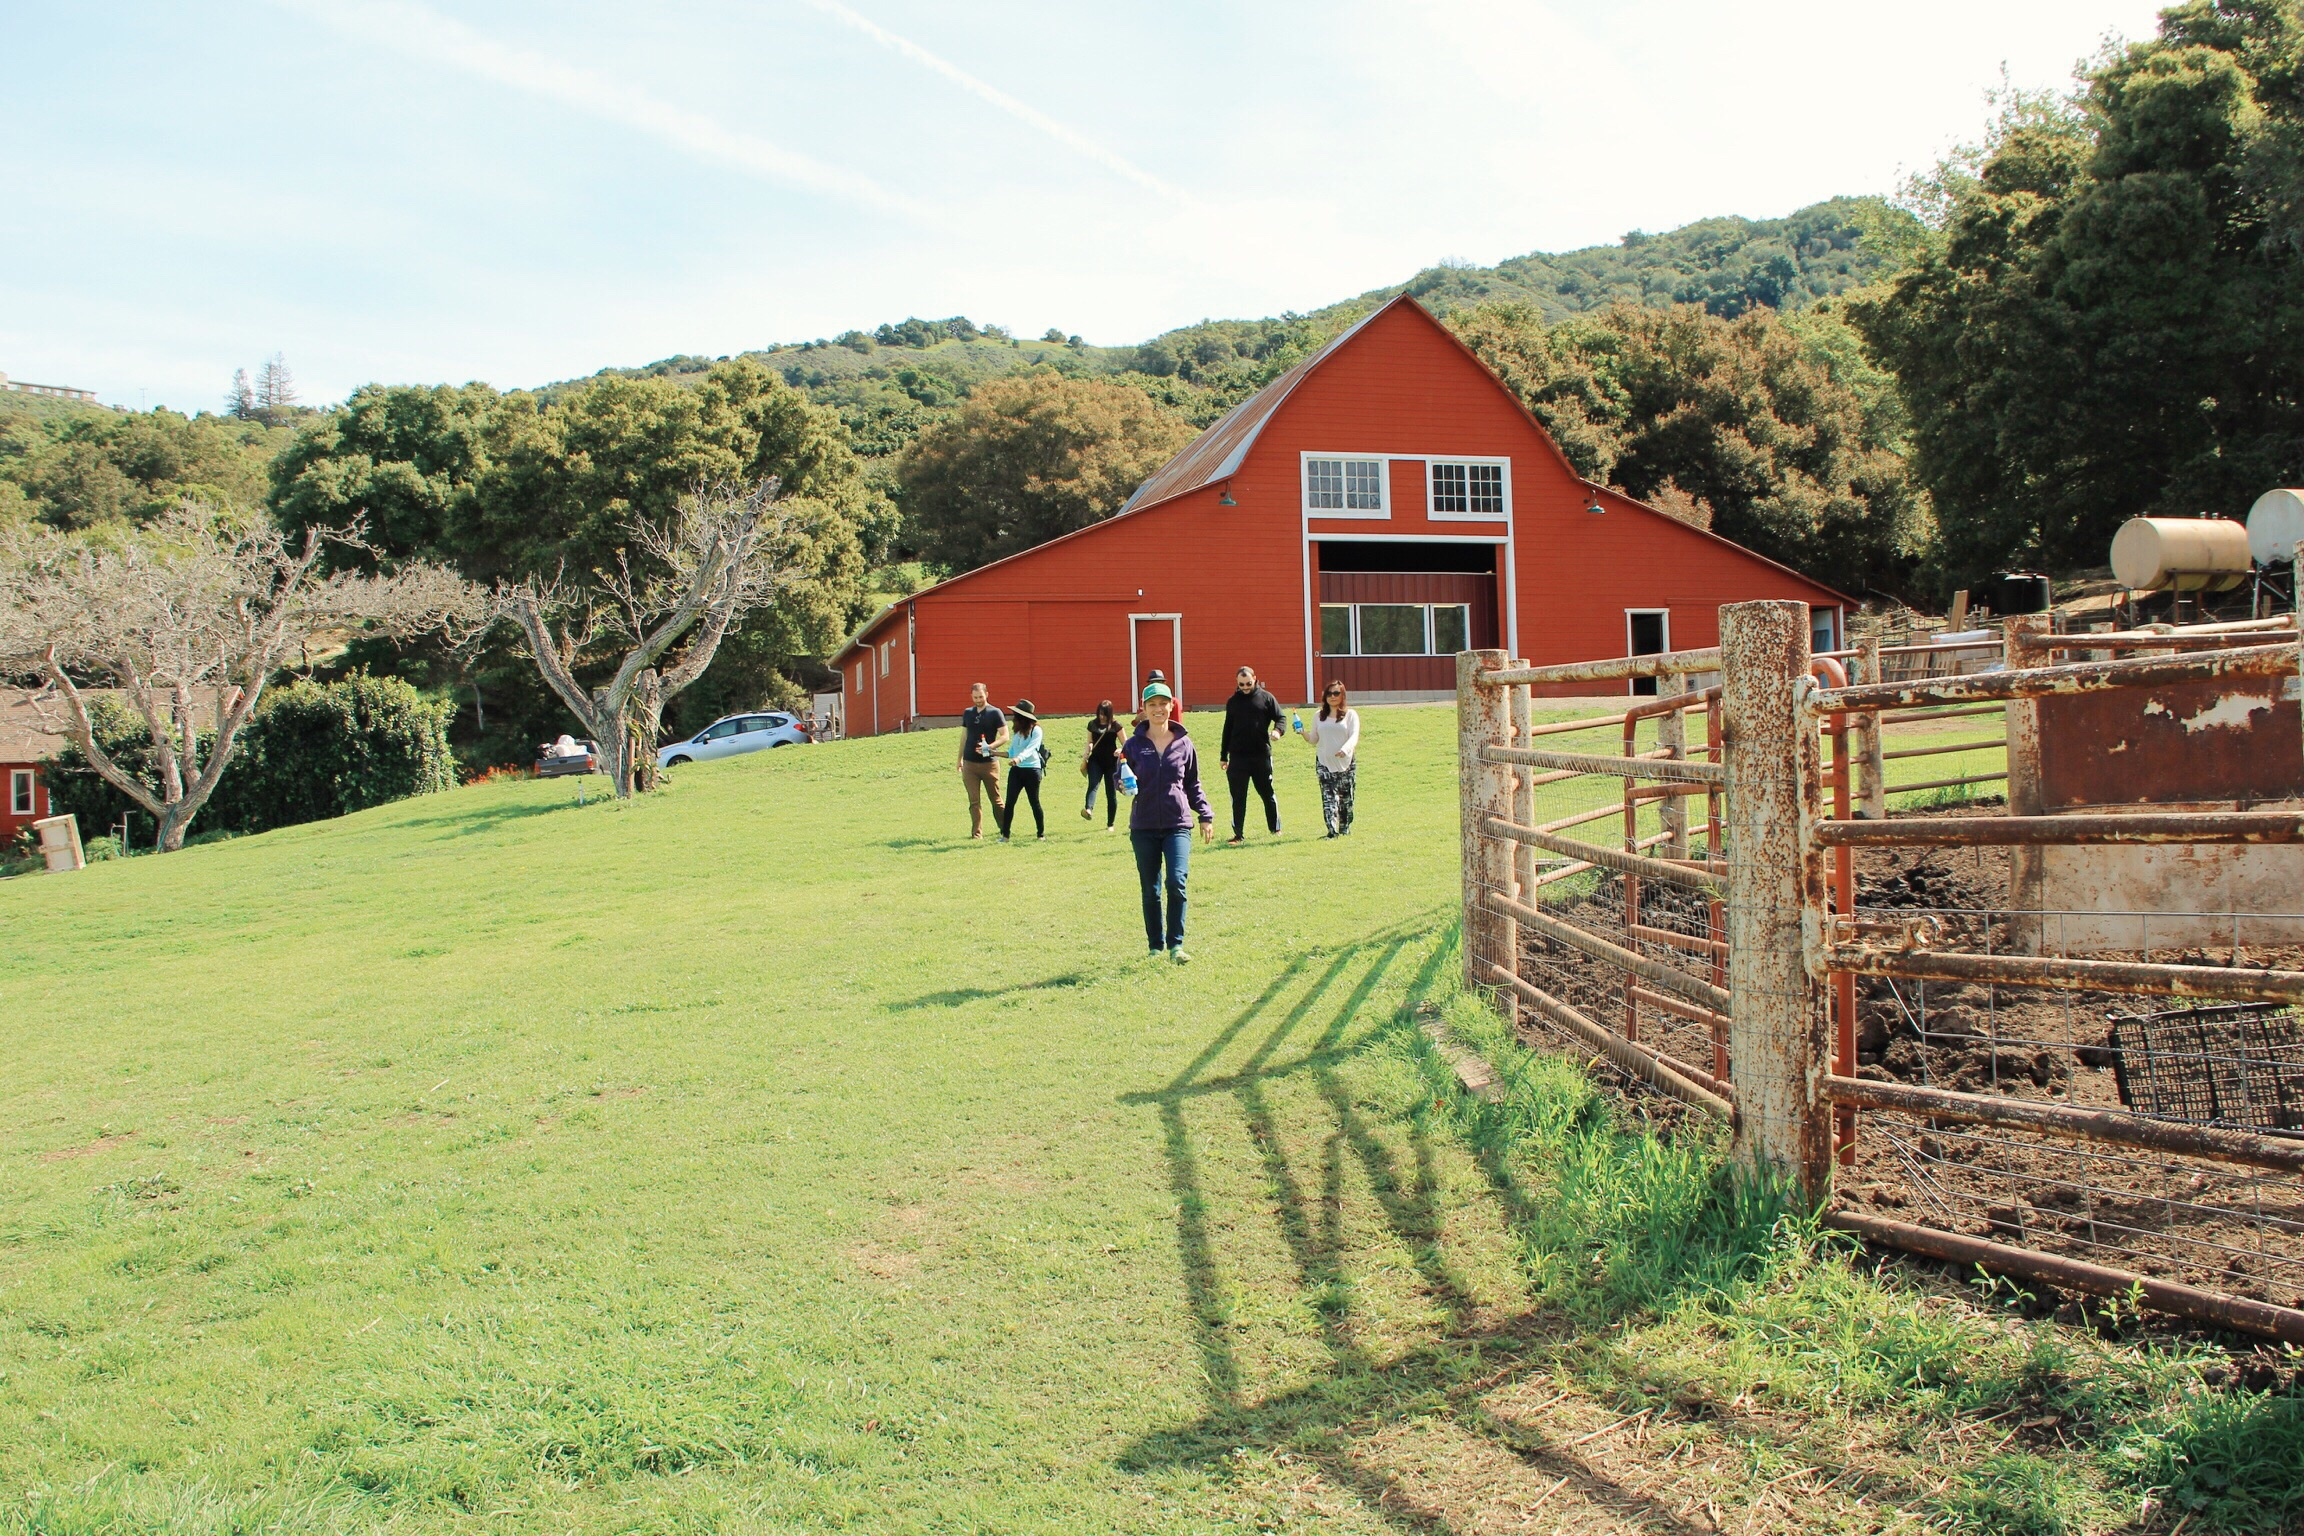 Time to bottle feed the kids at Stepladder Creamery in Cambria, CA